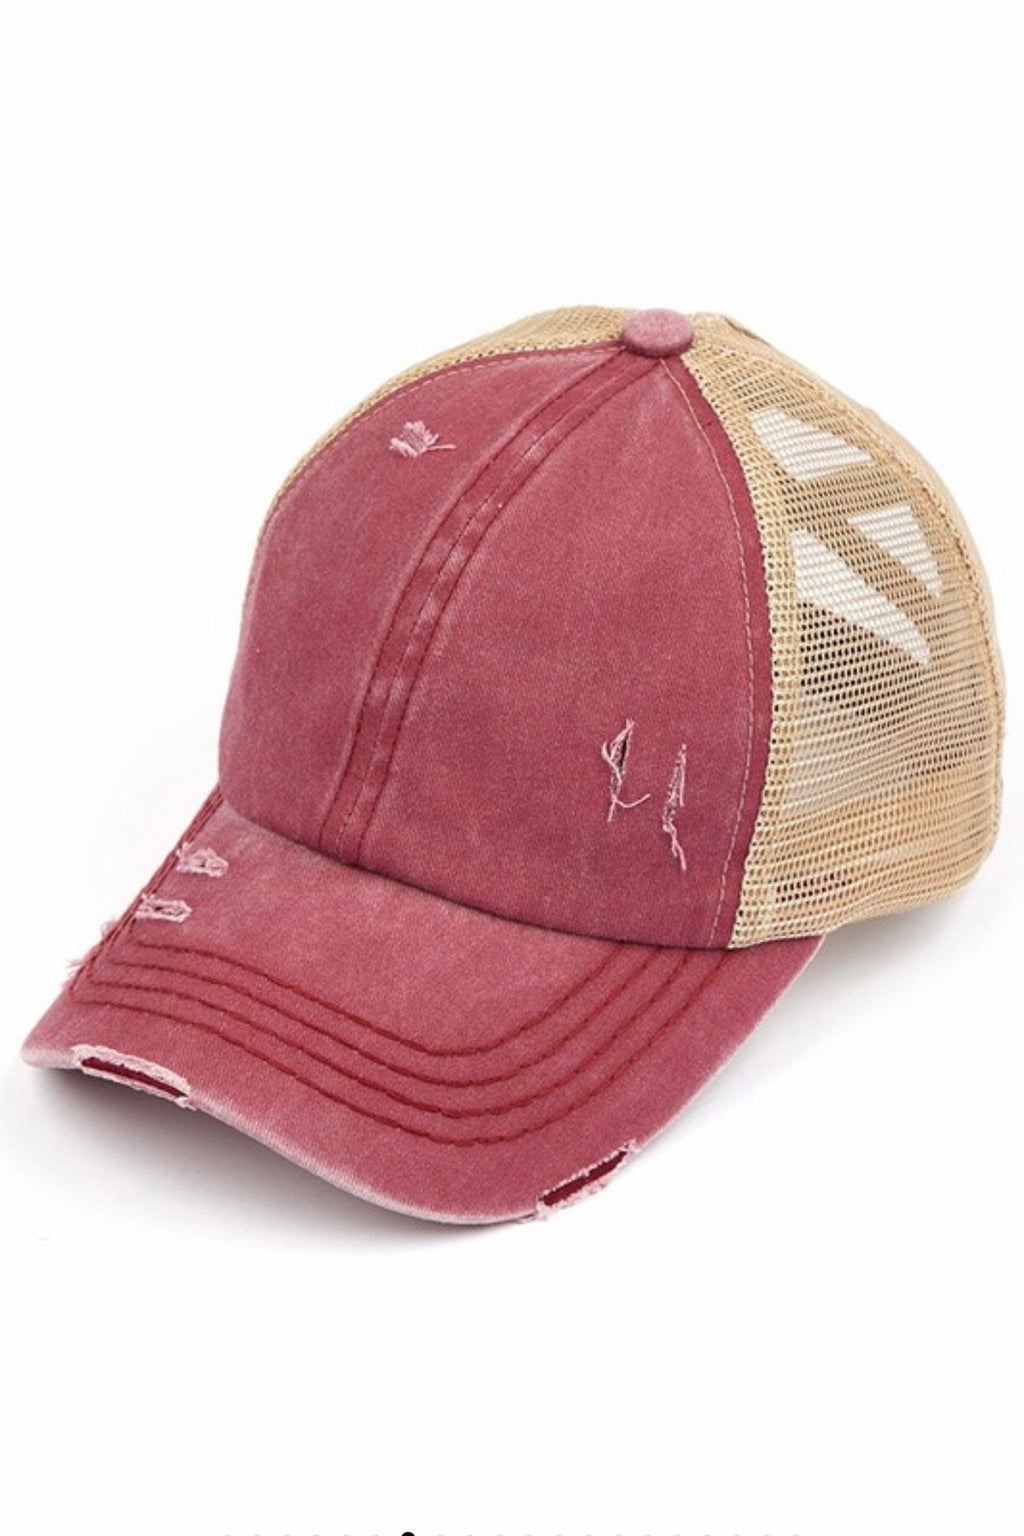 Ponytail Ball Cap in Berry